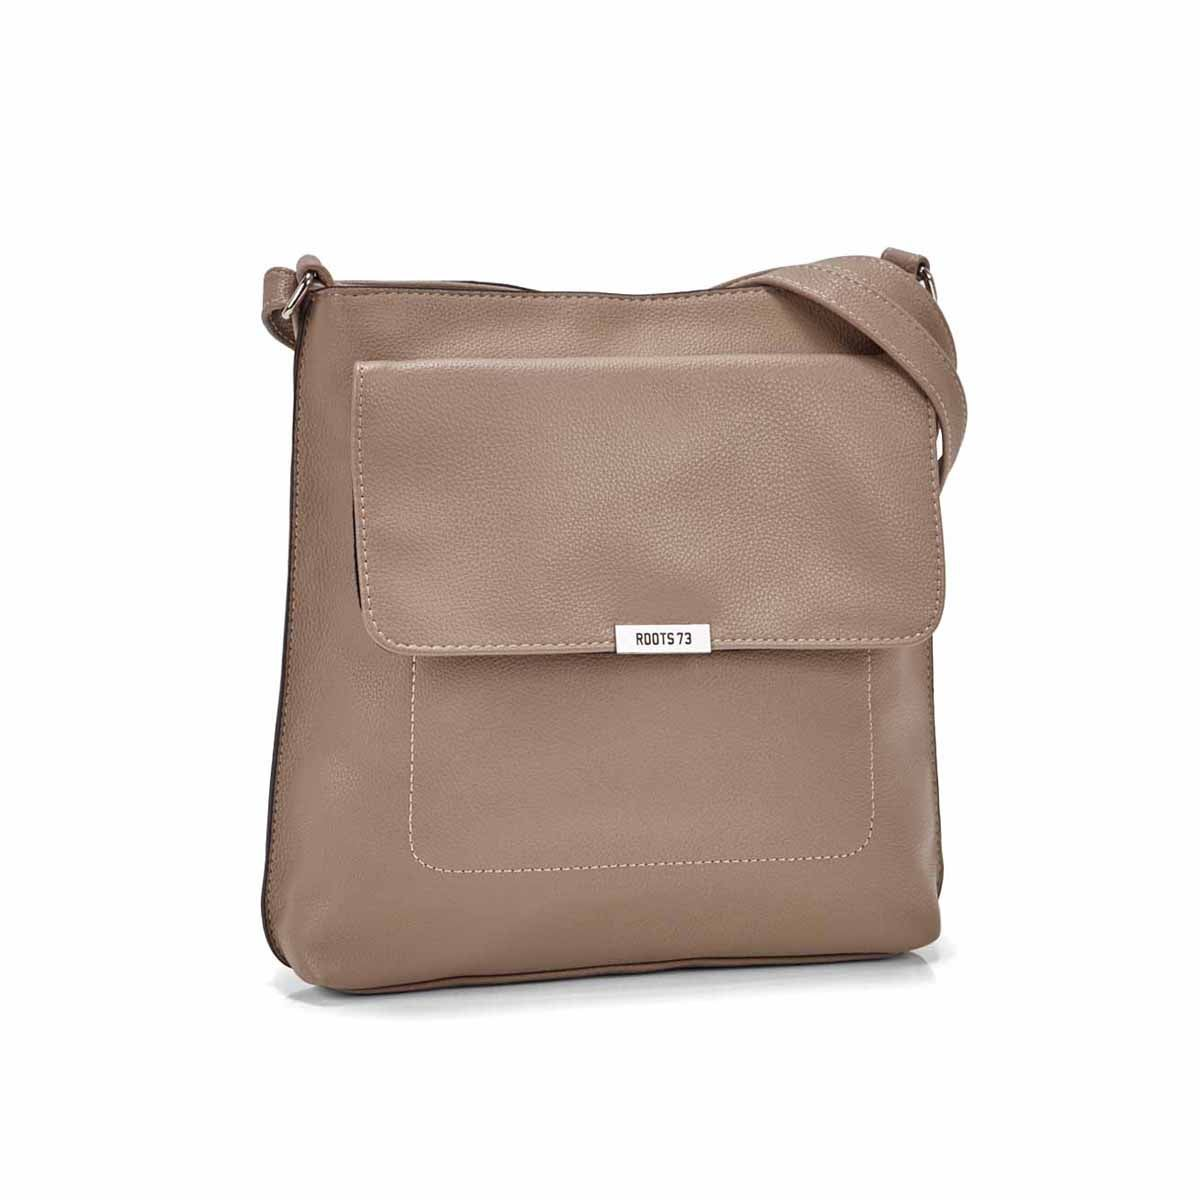 Women's R5431 taupe front flap crossbody bag